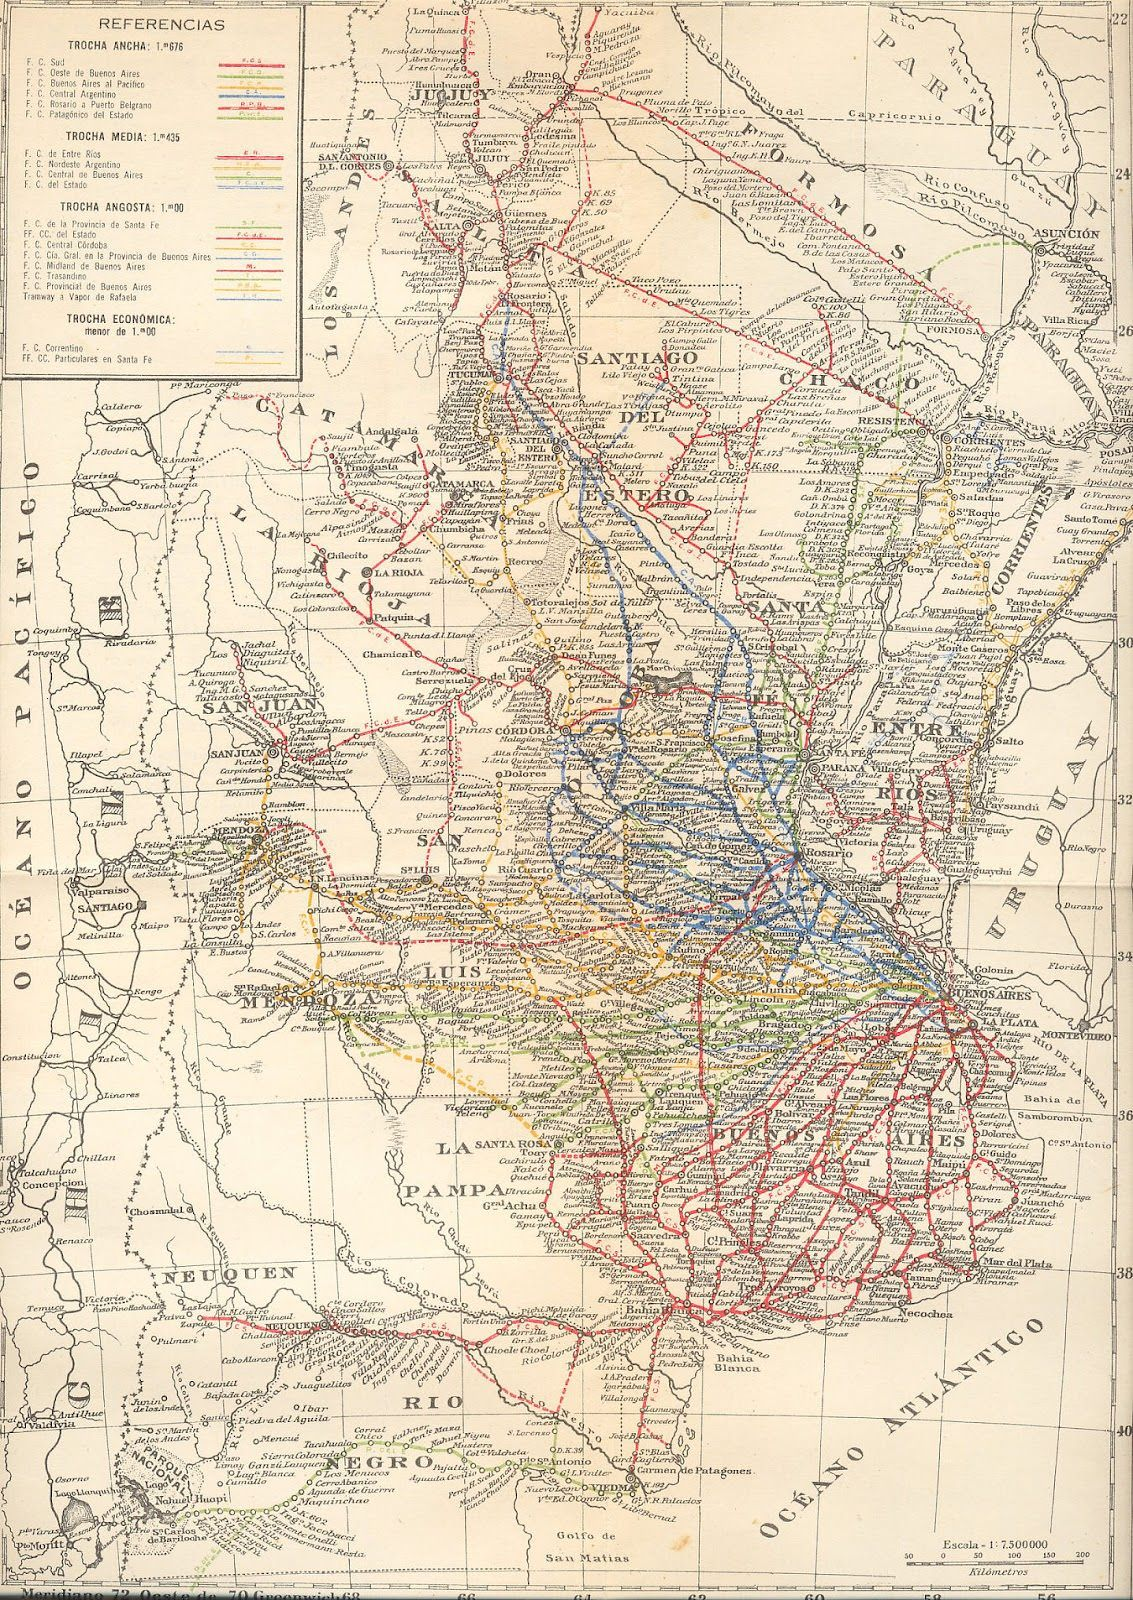 Railway system of Argentina in 1940